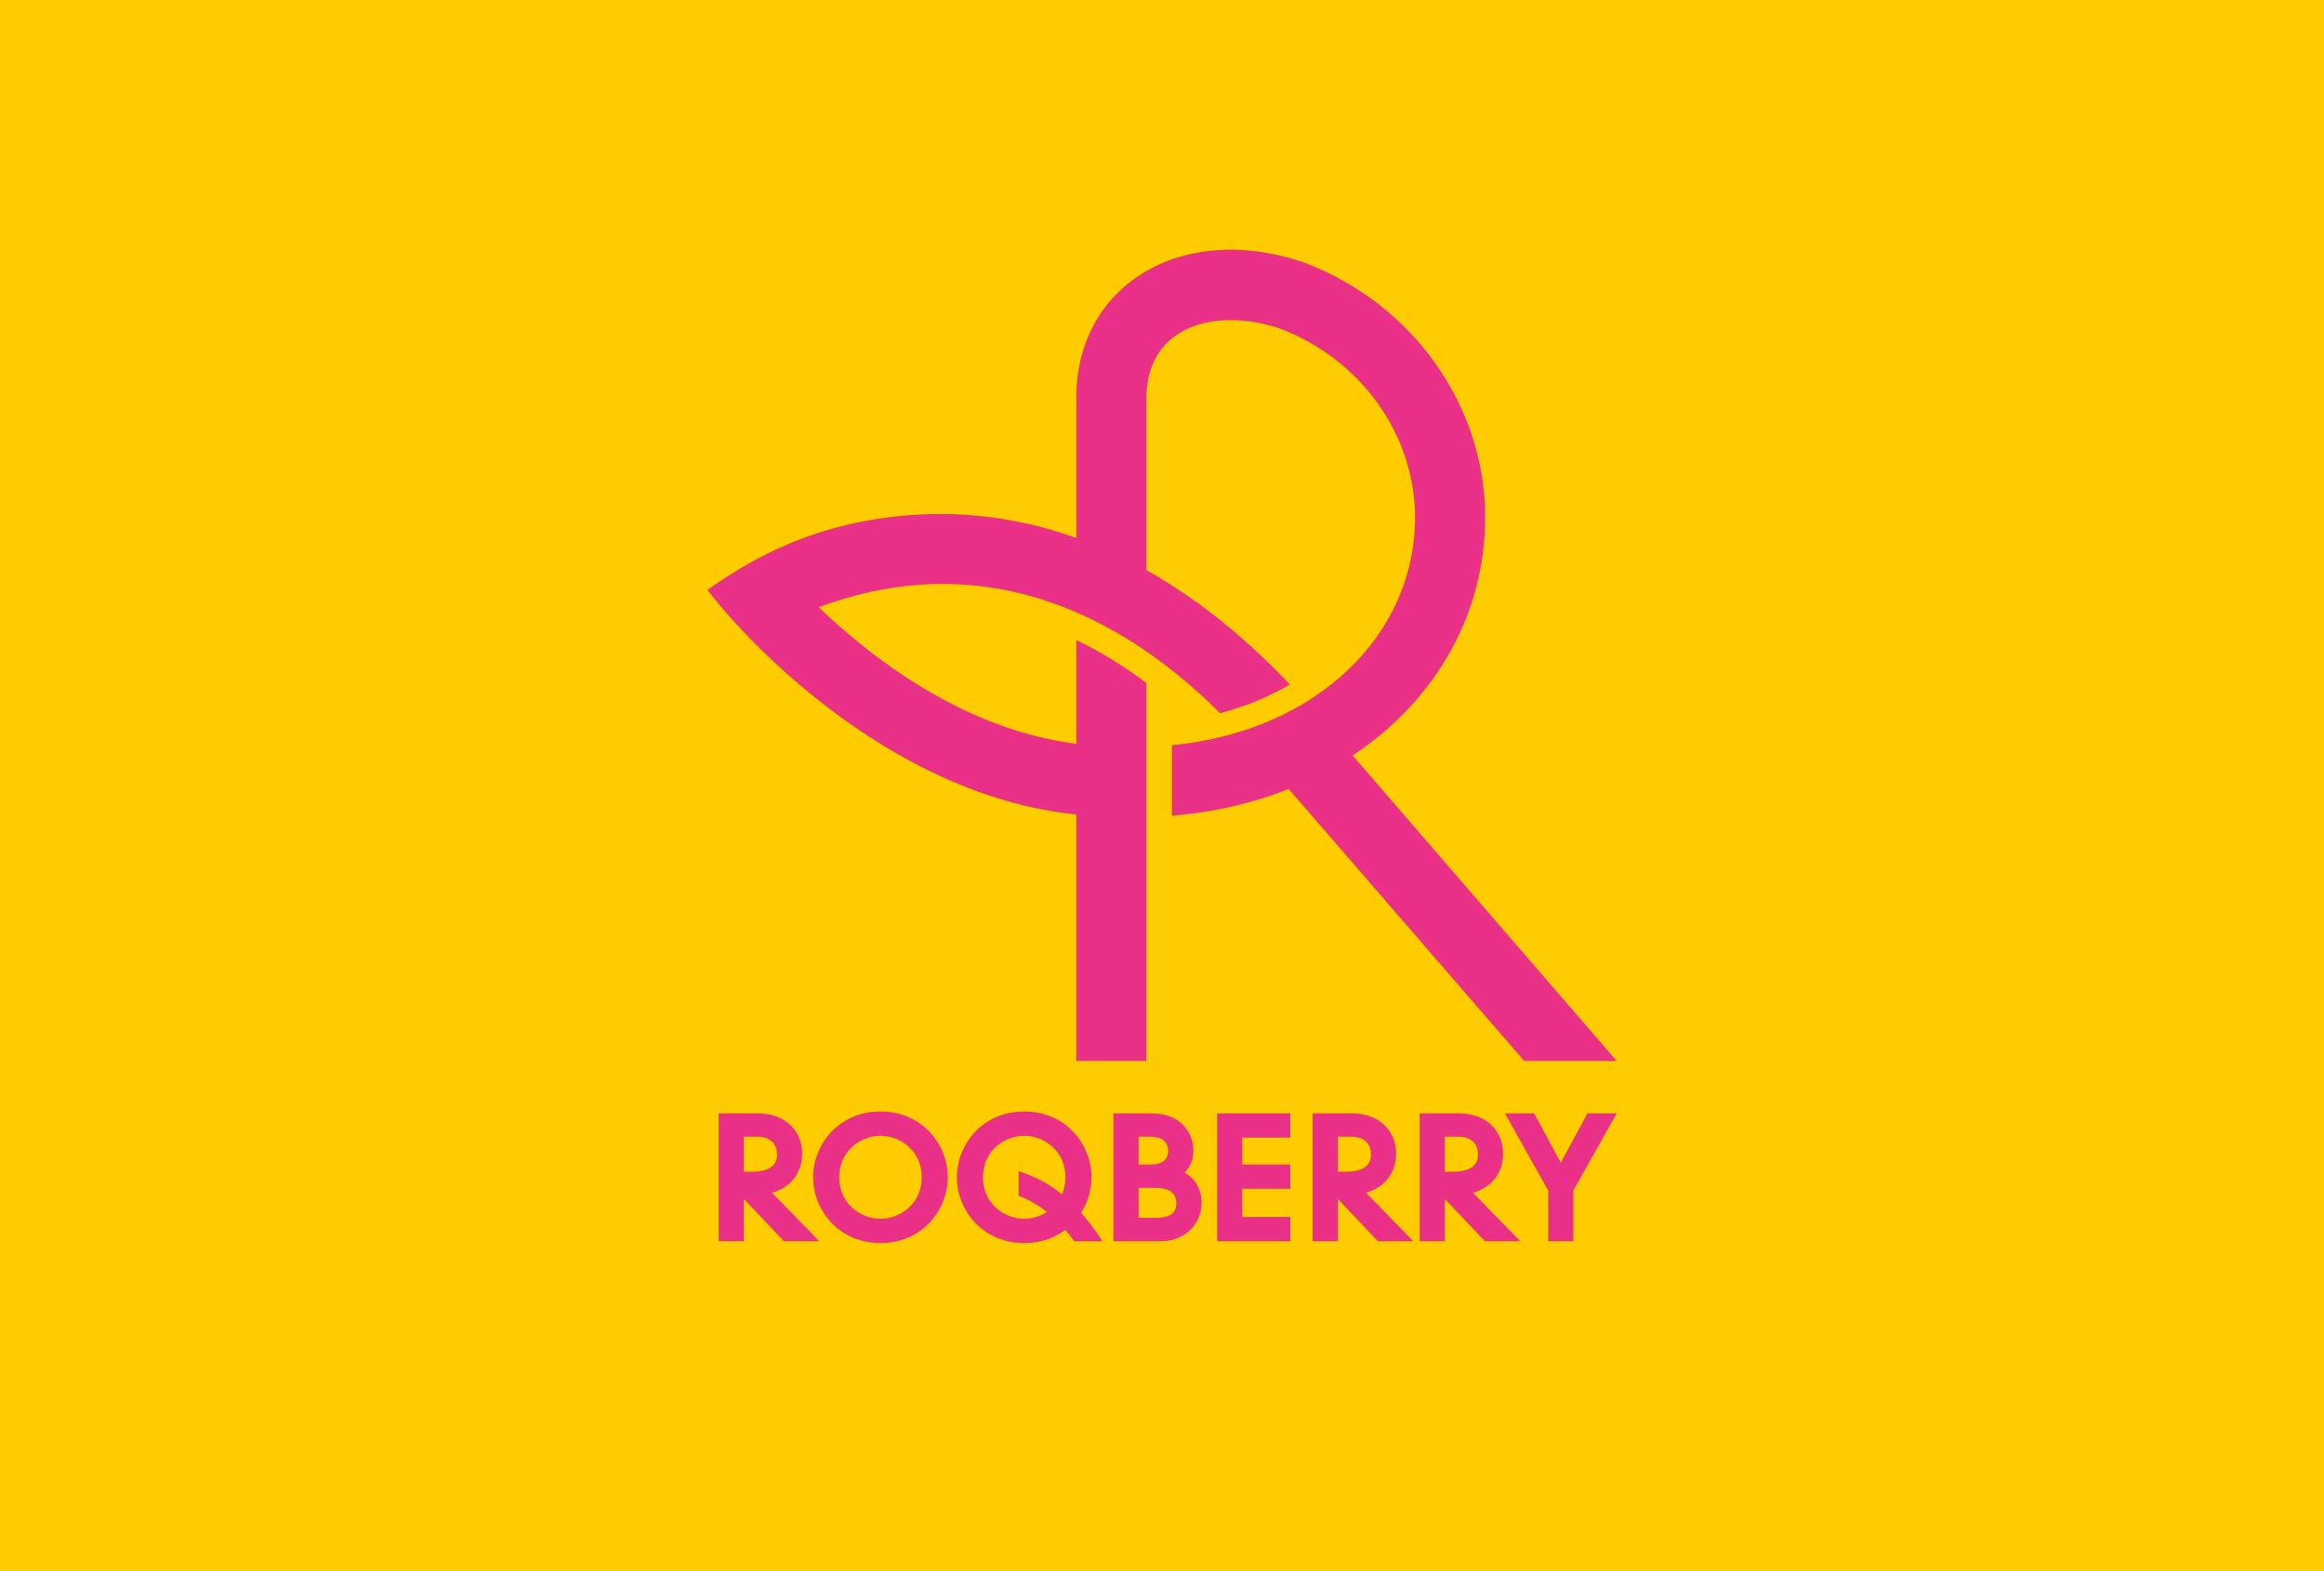 Brandmark for Roqberry designed by Distil Studio.